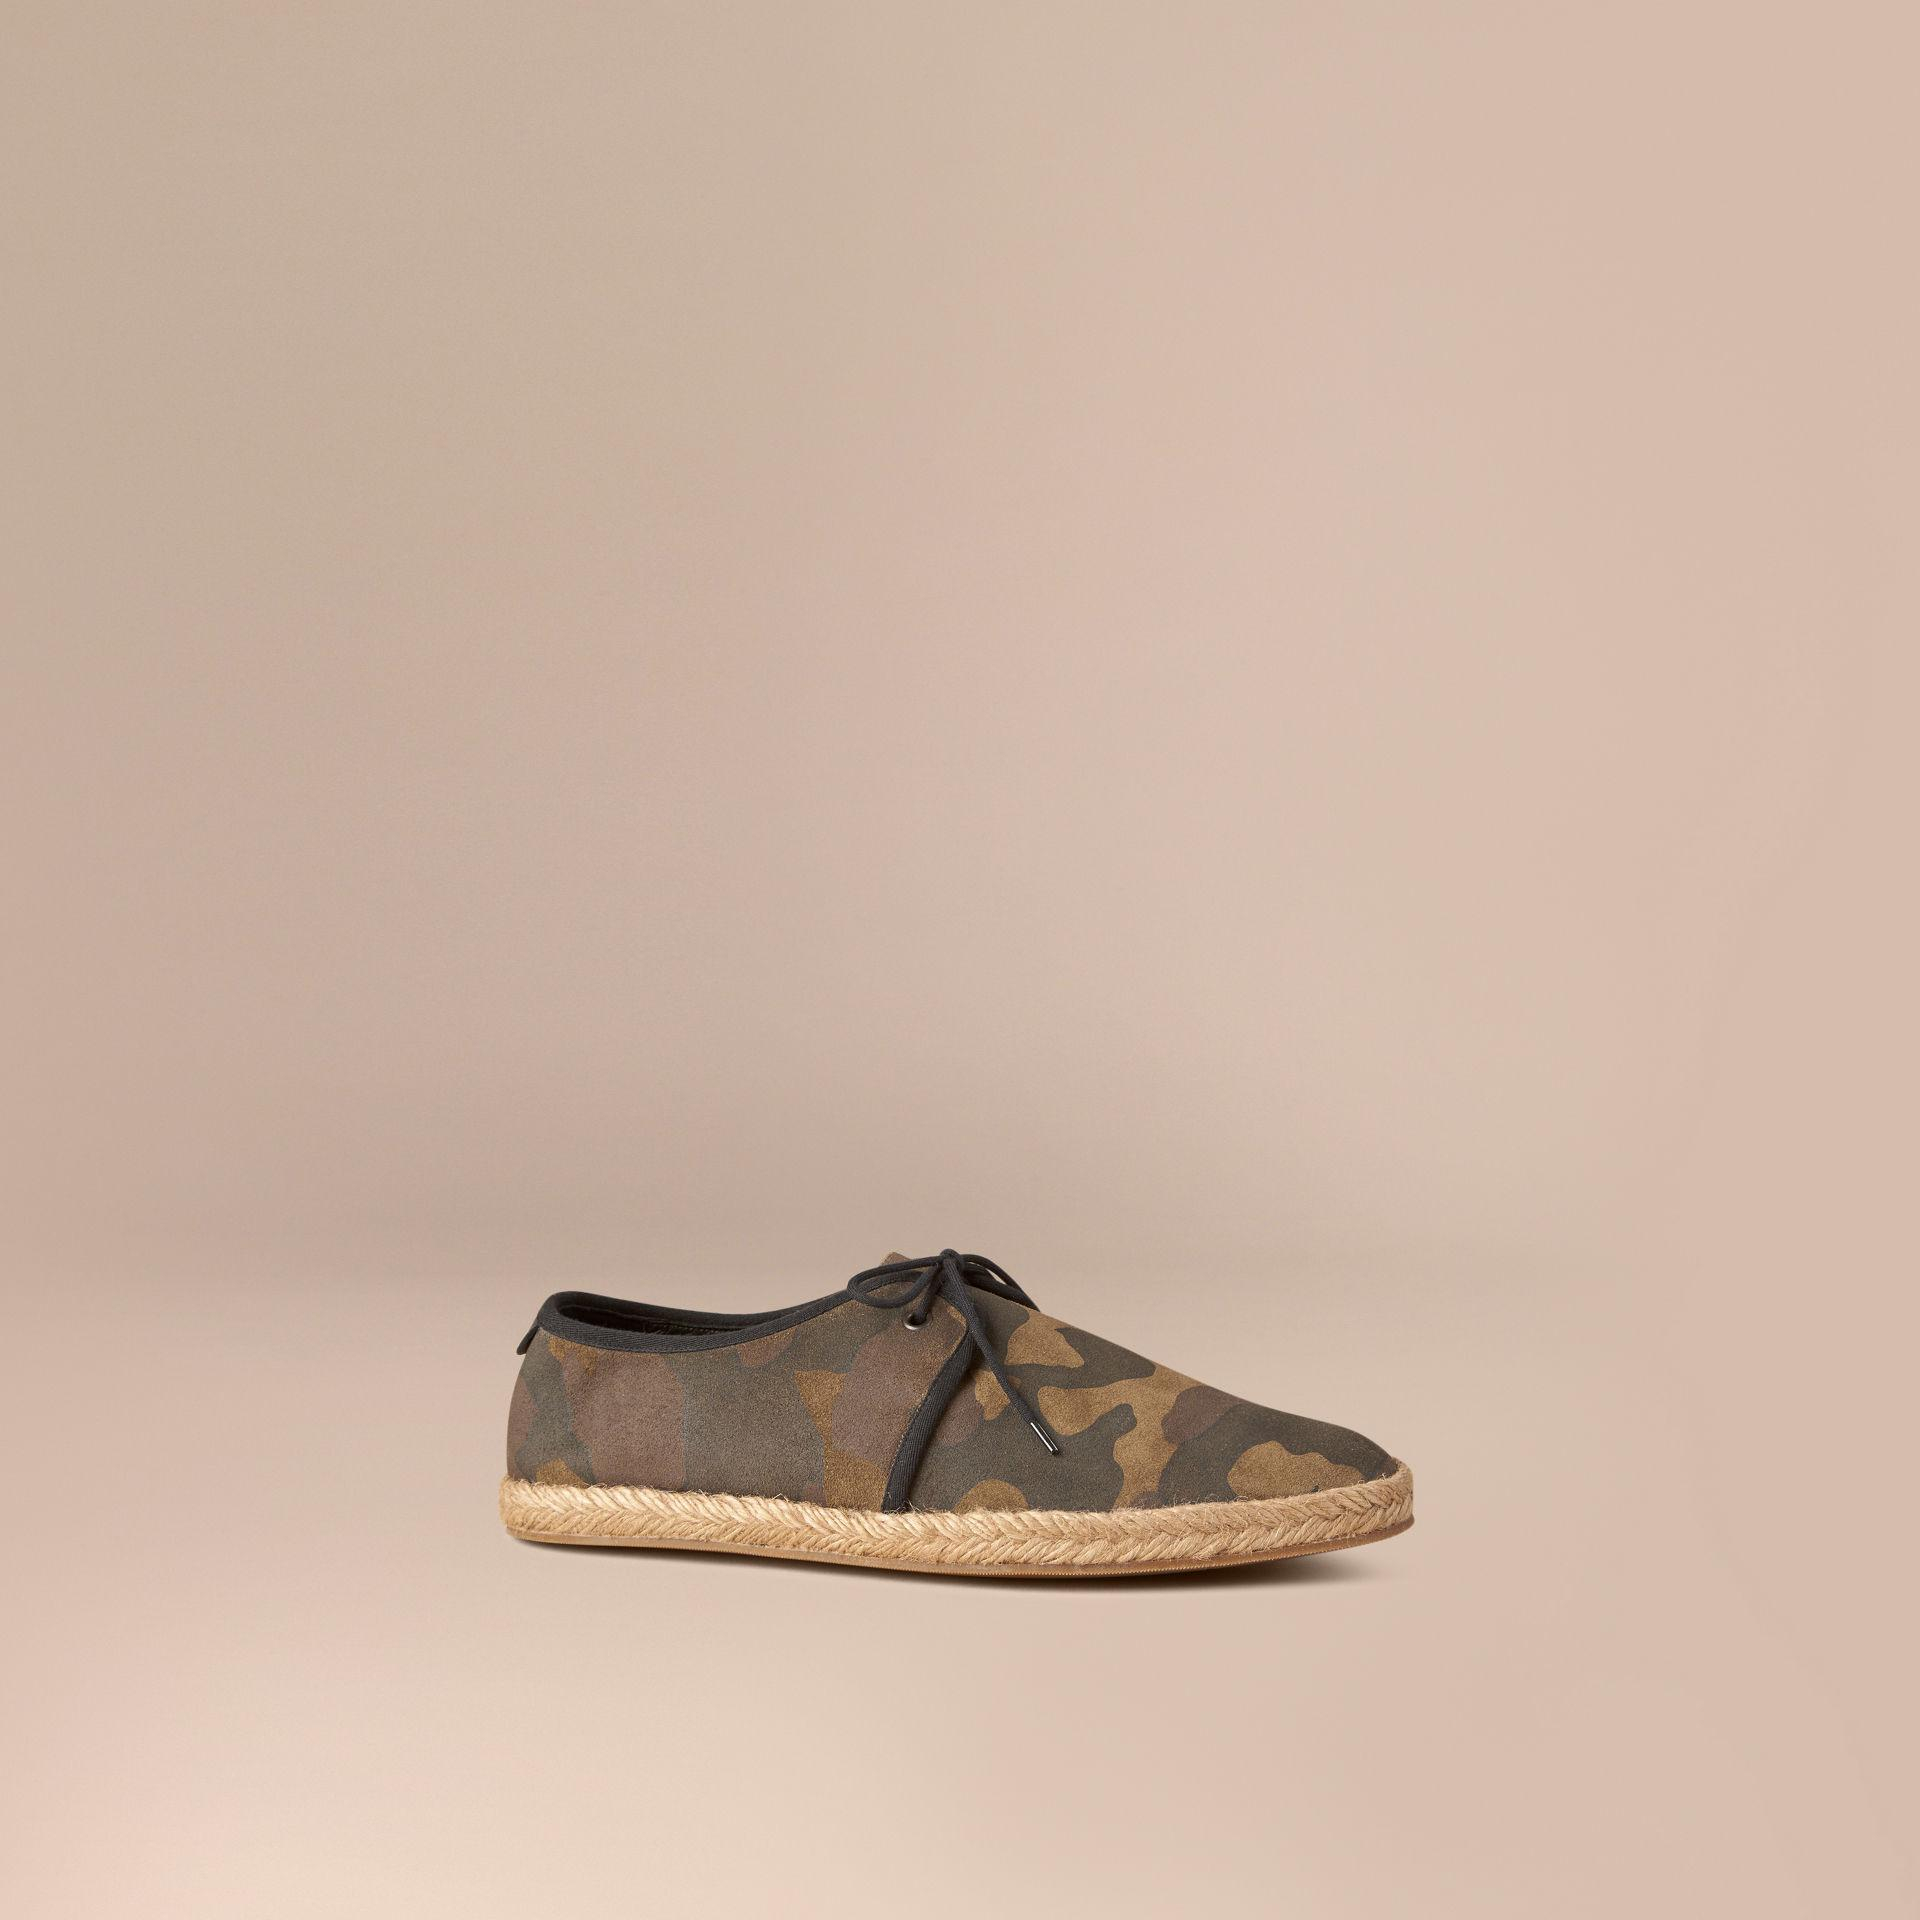 87079abd3c538 Lyst - Burberry Camouflage Print Suede Lace-up Espadrilles in Green